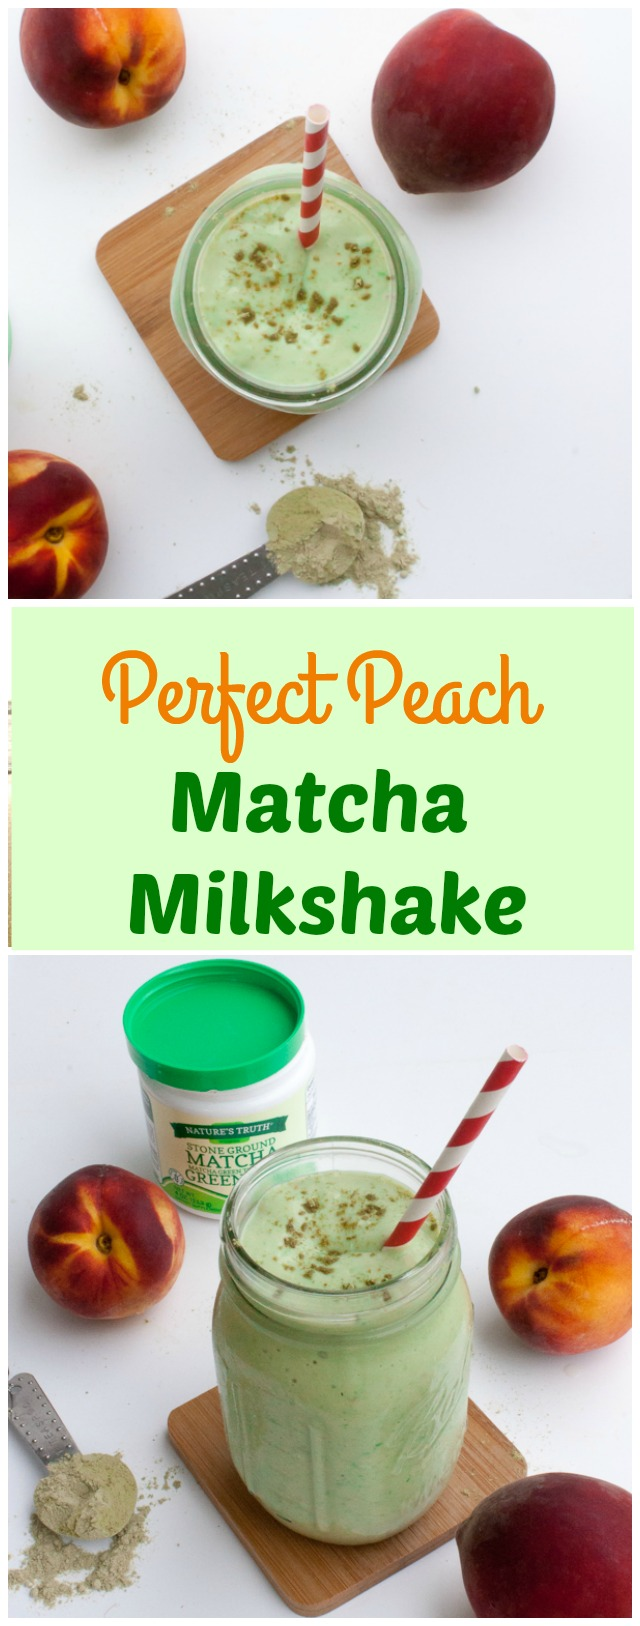 Stimulate your brain + keep calm: PERFECT PEACH MATCHA PROTEIN MILKSHAKE | @tspcurry